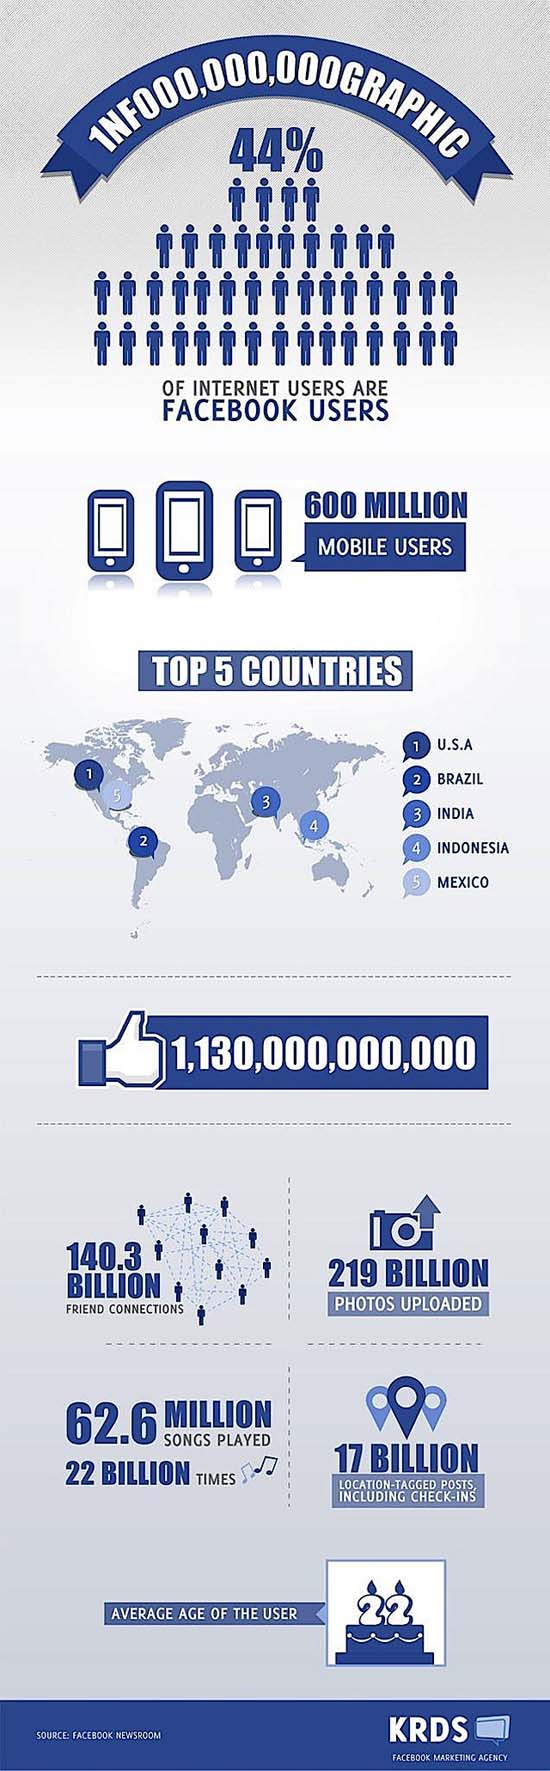 Facebook billion member infographic